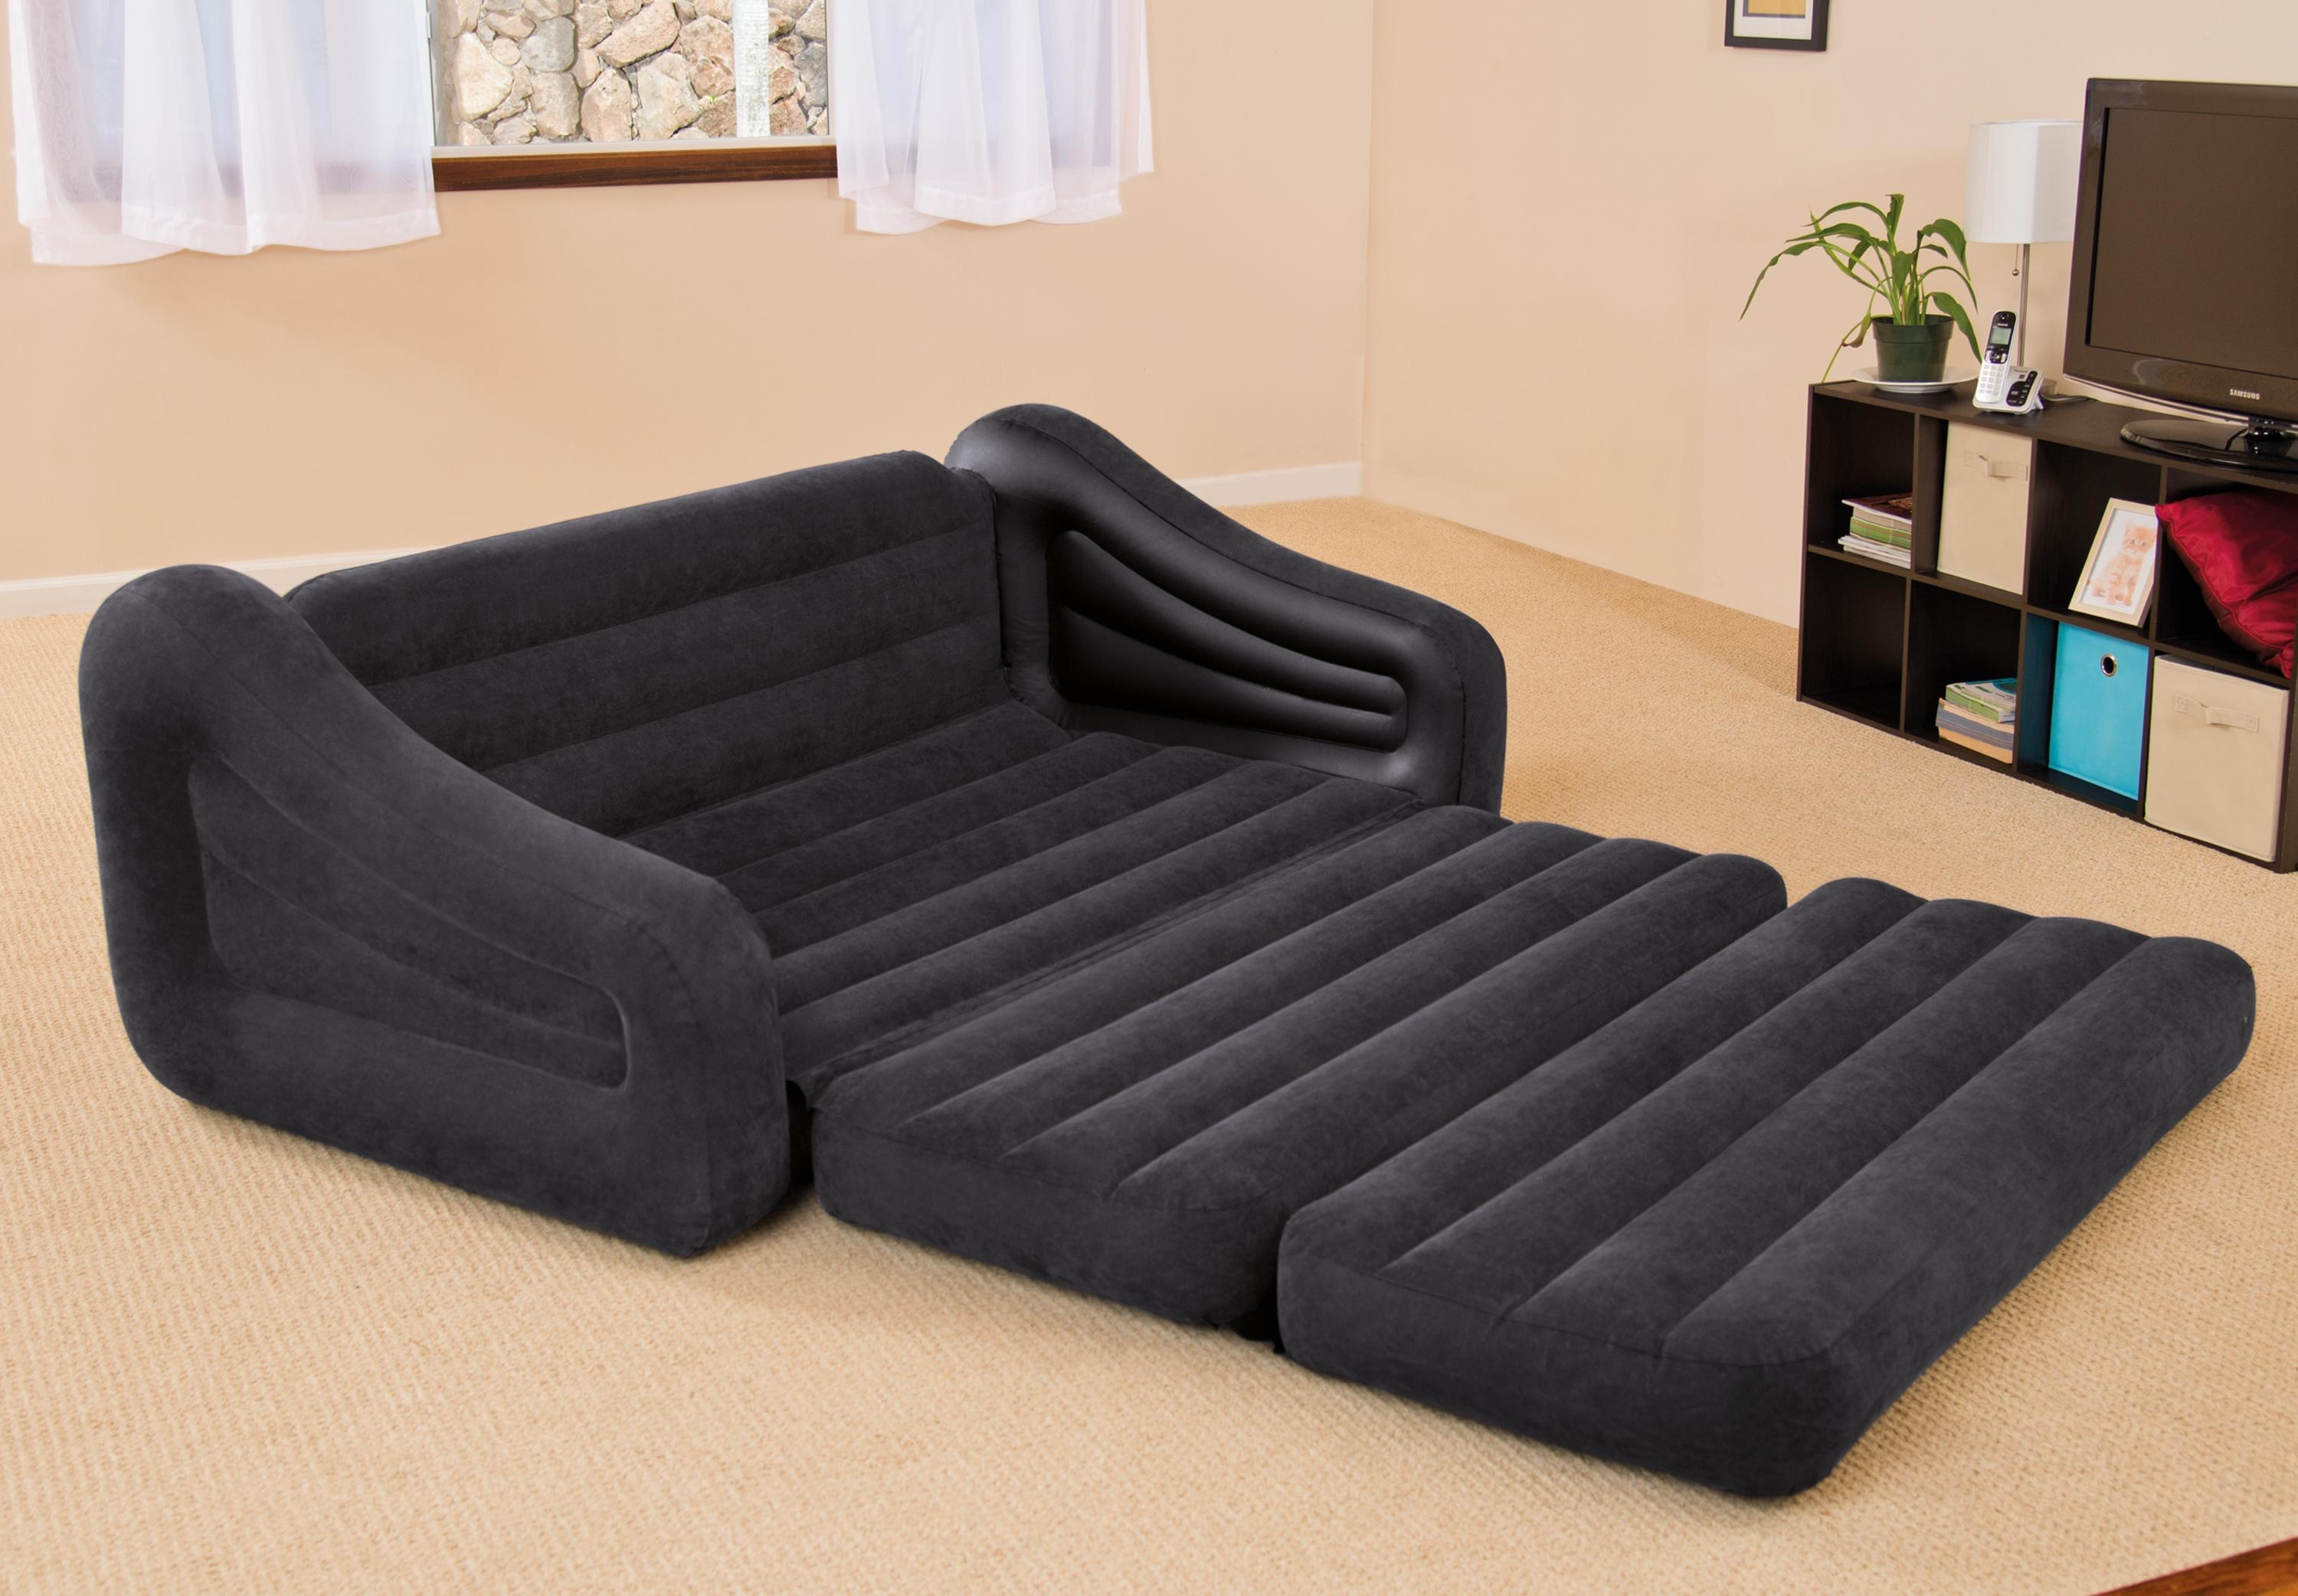 Intex Inflatable Pull Out Sofa & Queen Bed Mattress Sleeper W/ Ac With Regard To Inflatable Sofa Beds Mattress (Image 9 of 20)